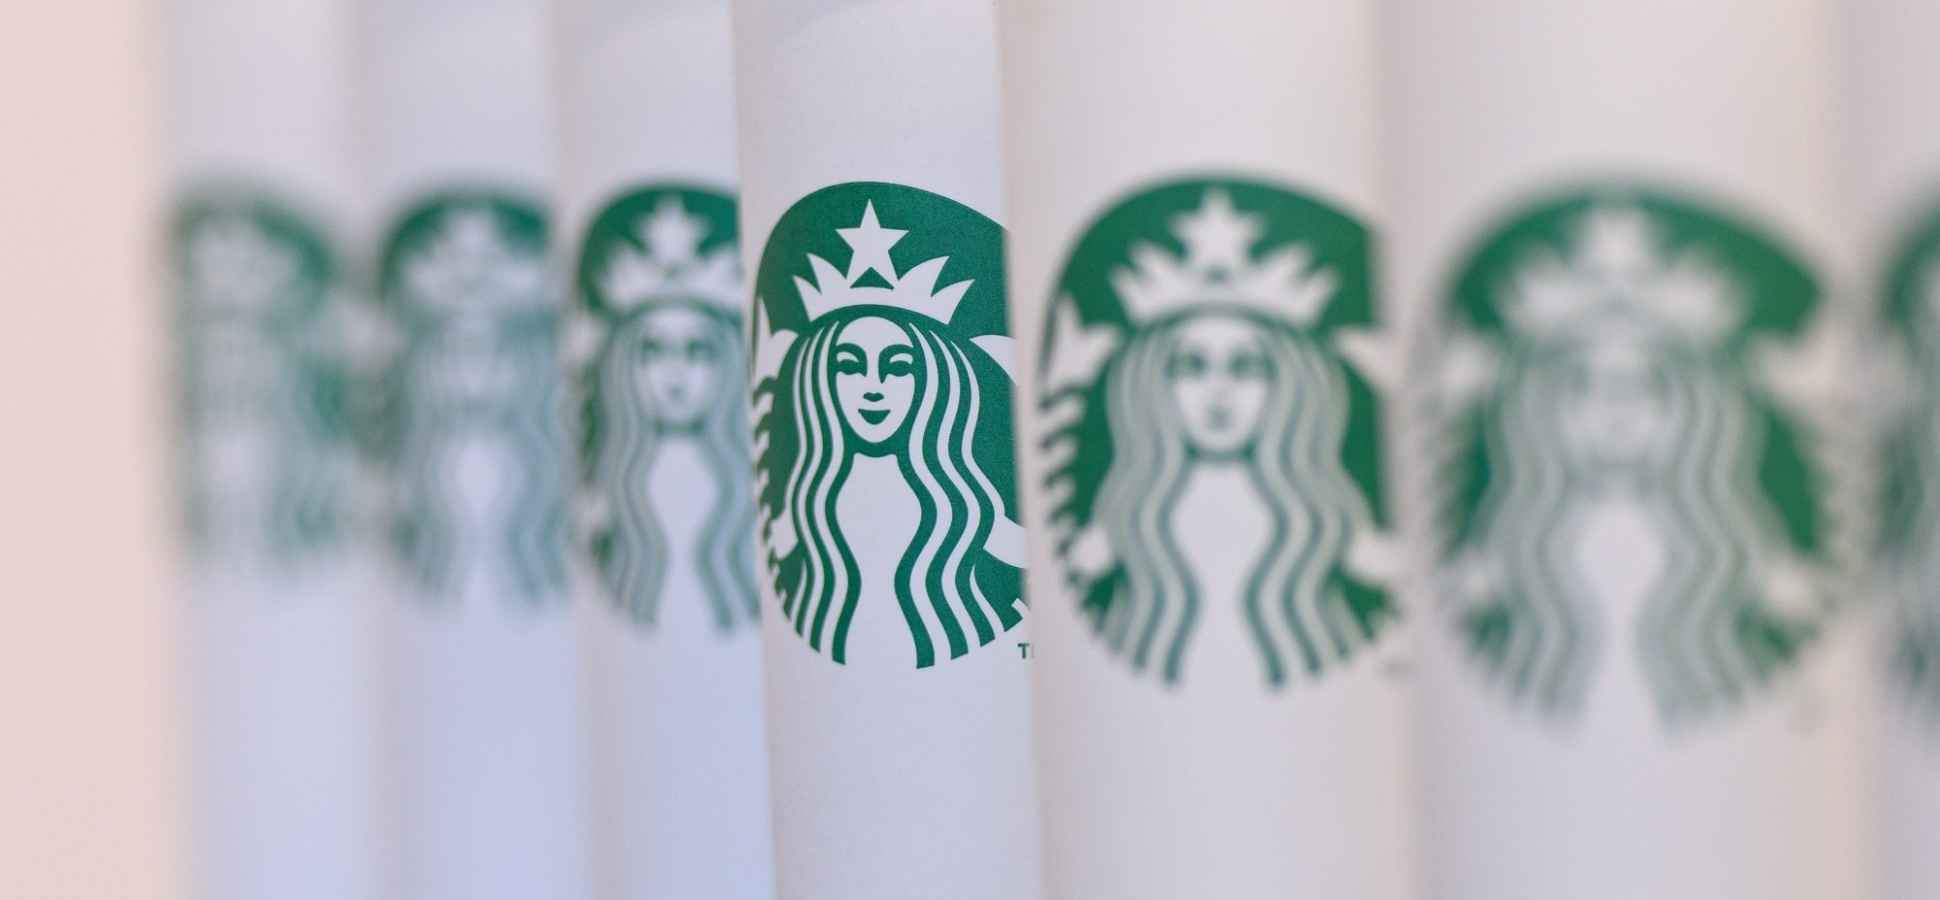 Starbucks Just Admitted It's Got a Big Problem (and It's the Company's Own Fault)